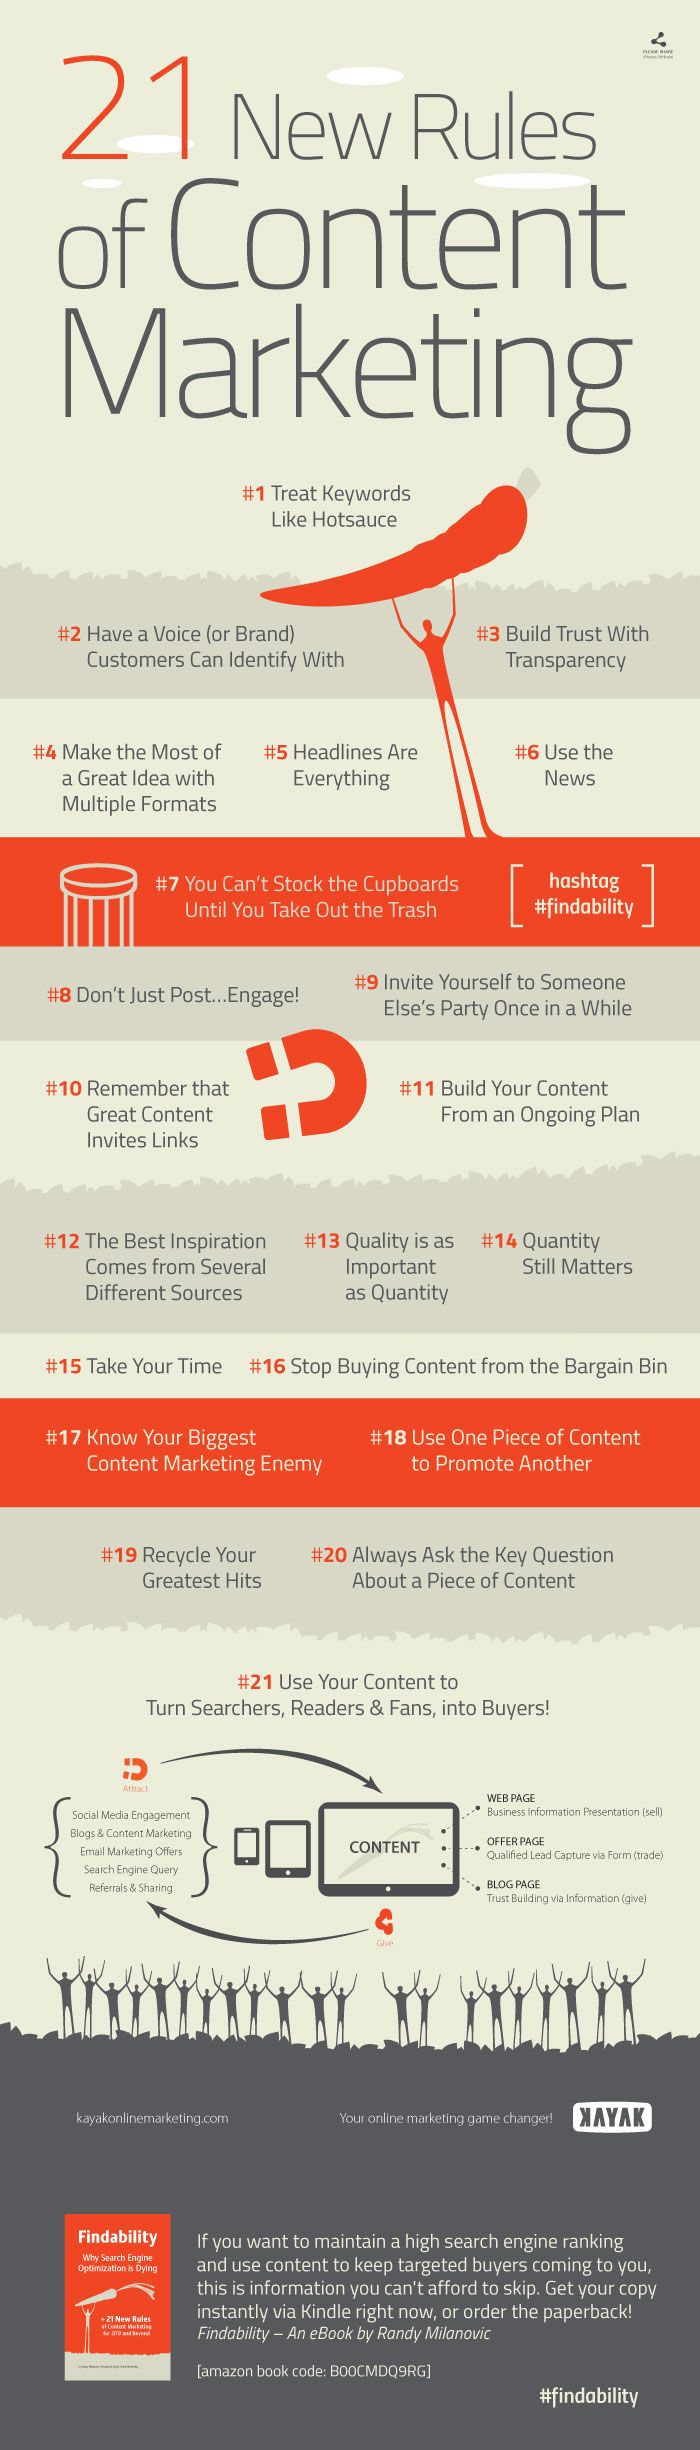 21 New Content Marketing Rules